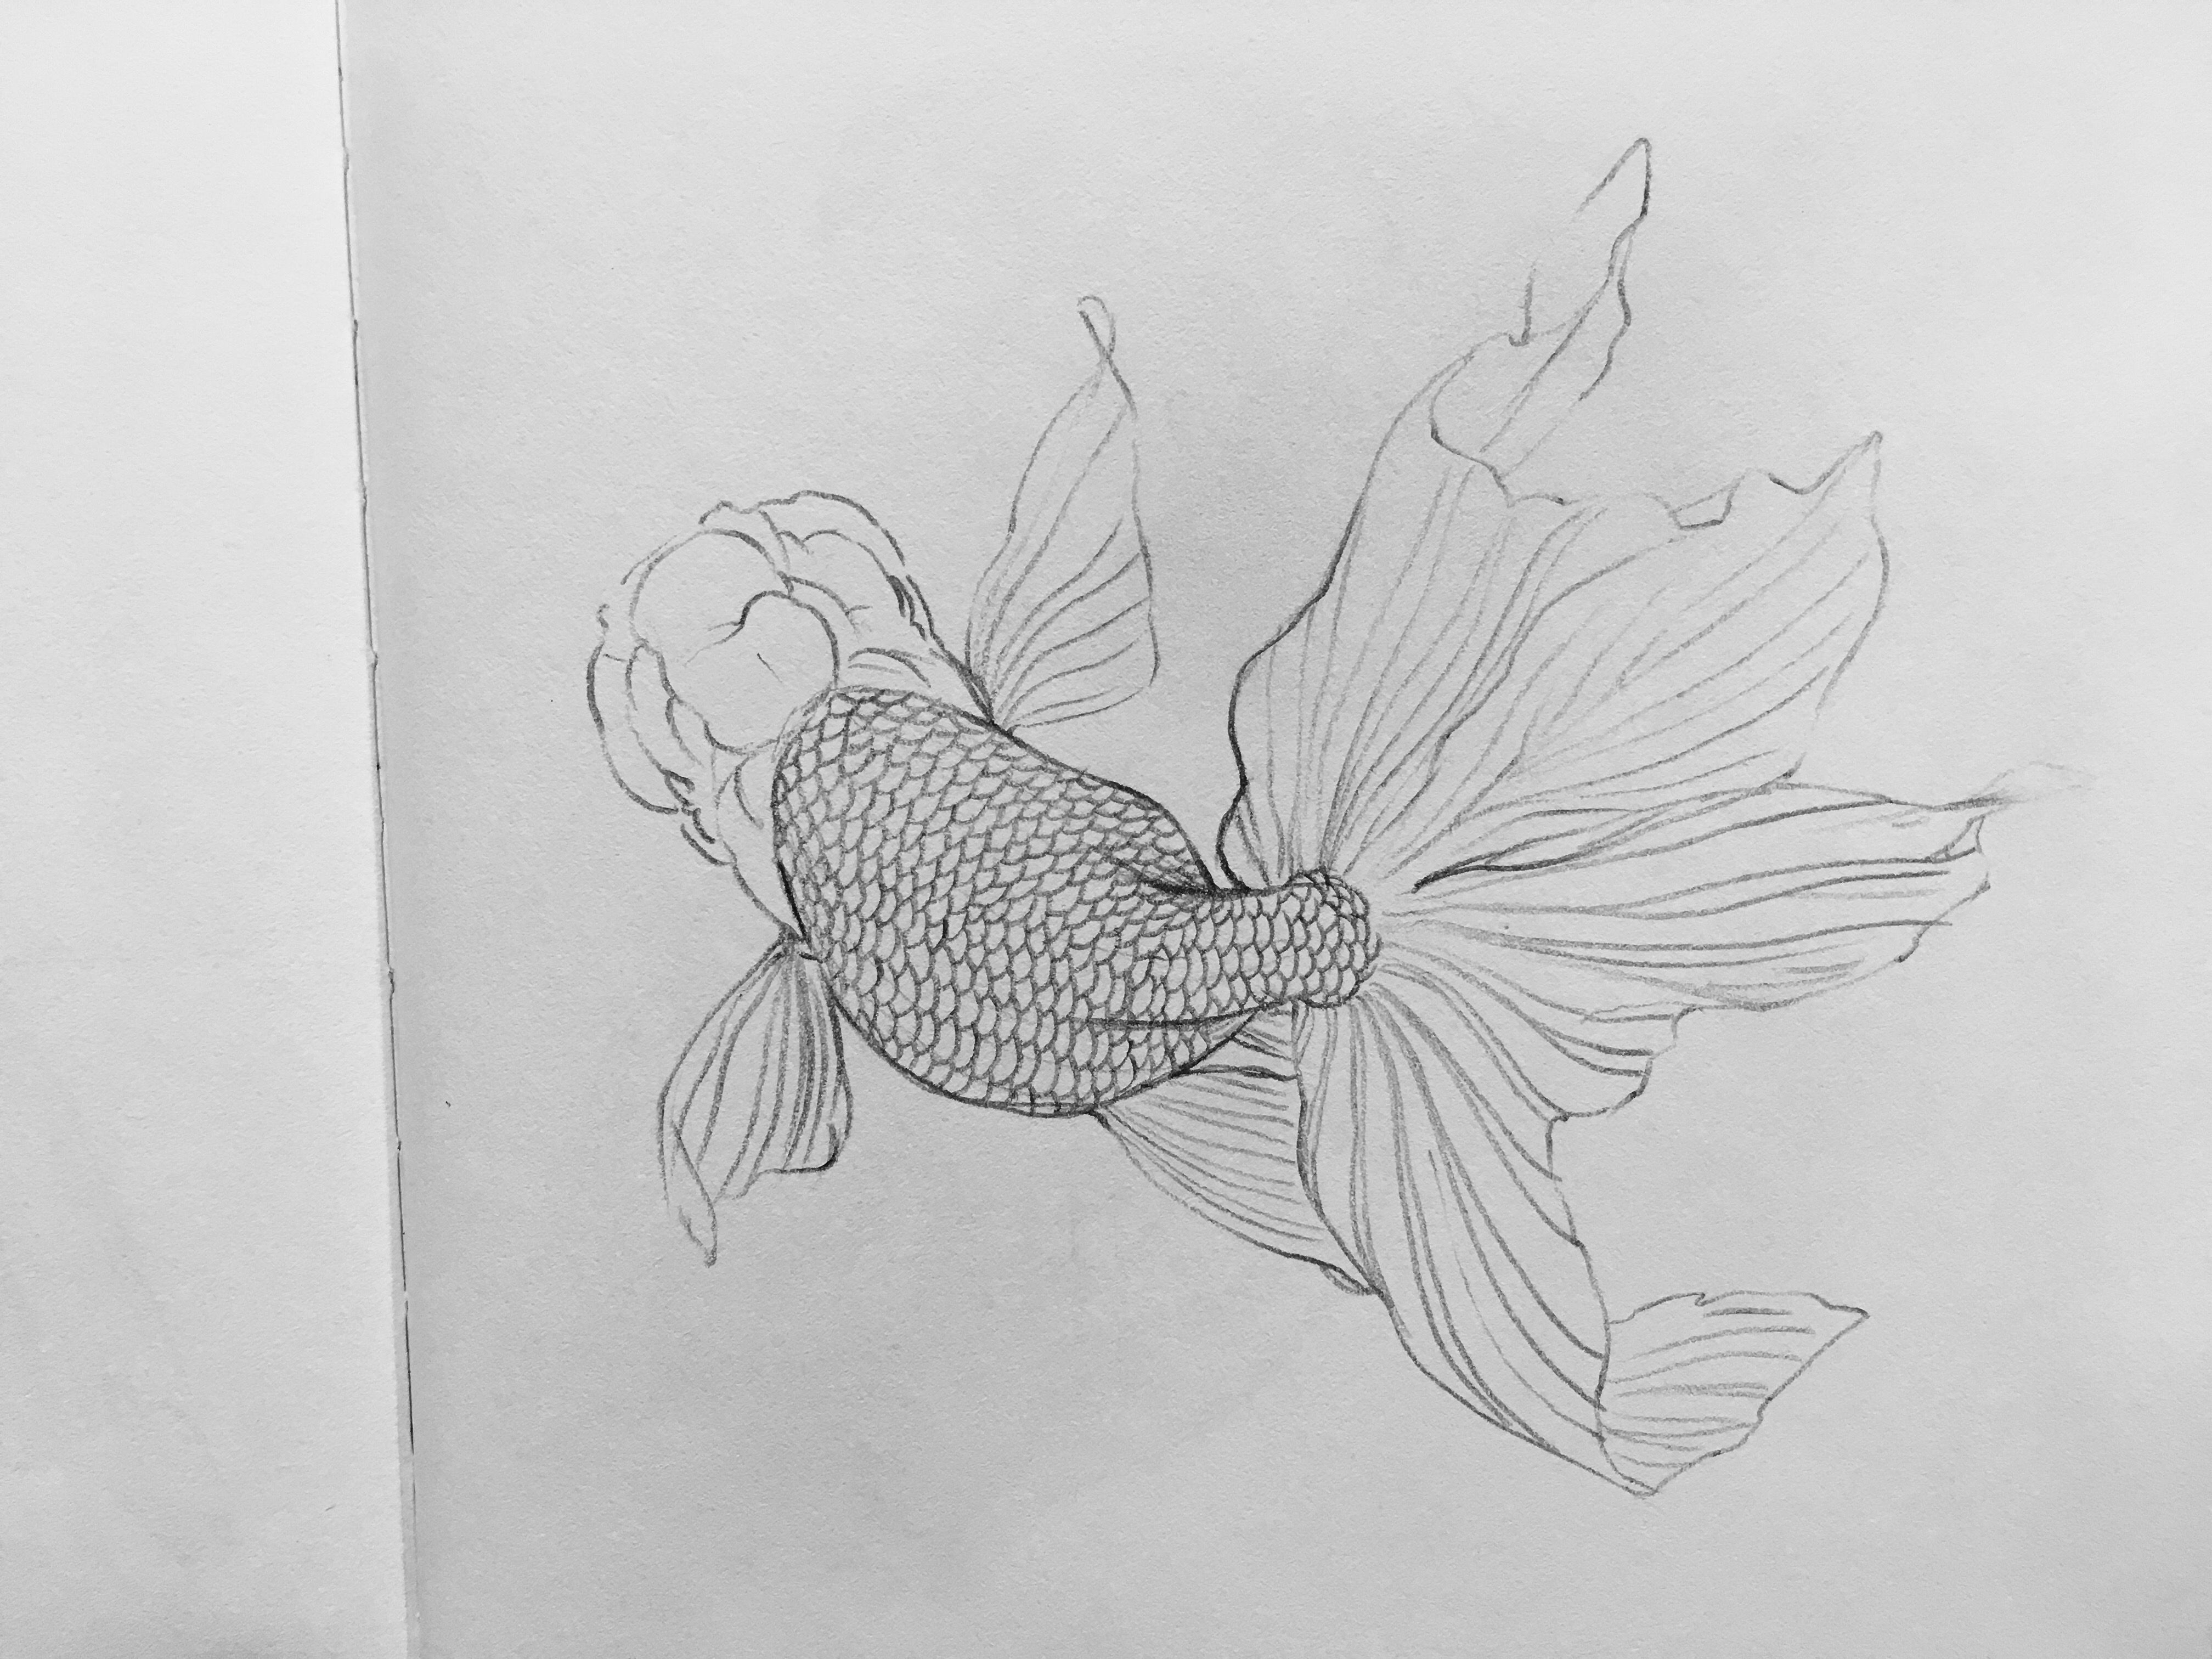 Uncategorized Goldfish Drawings pin by on gold fish pinterest goldfish and drawings charcoal art cork boards sketchbook ideas colored pencils bullet j